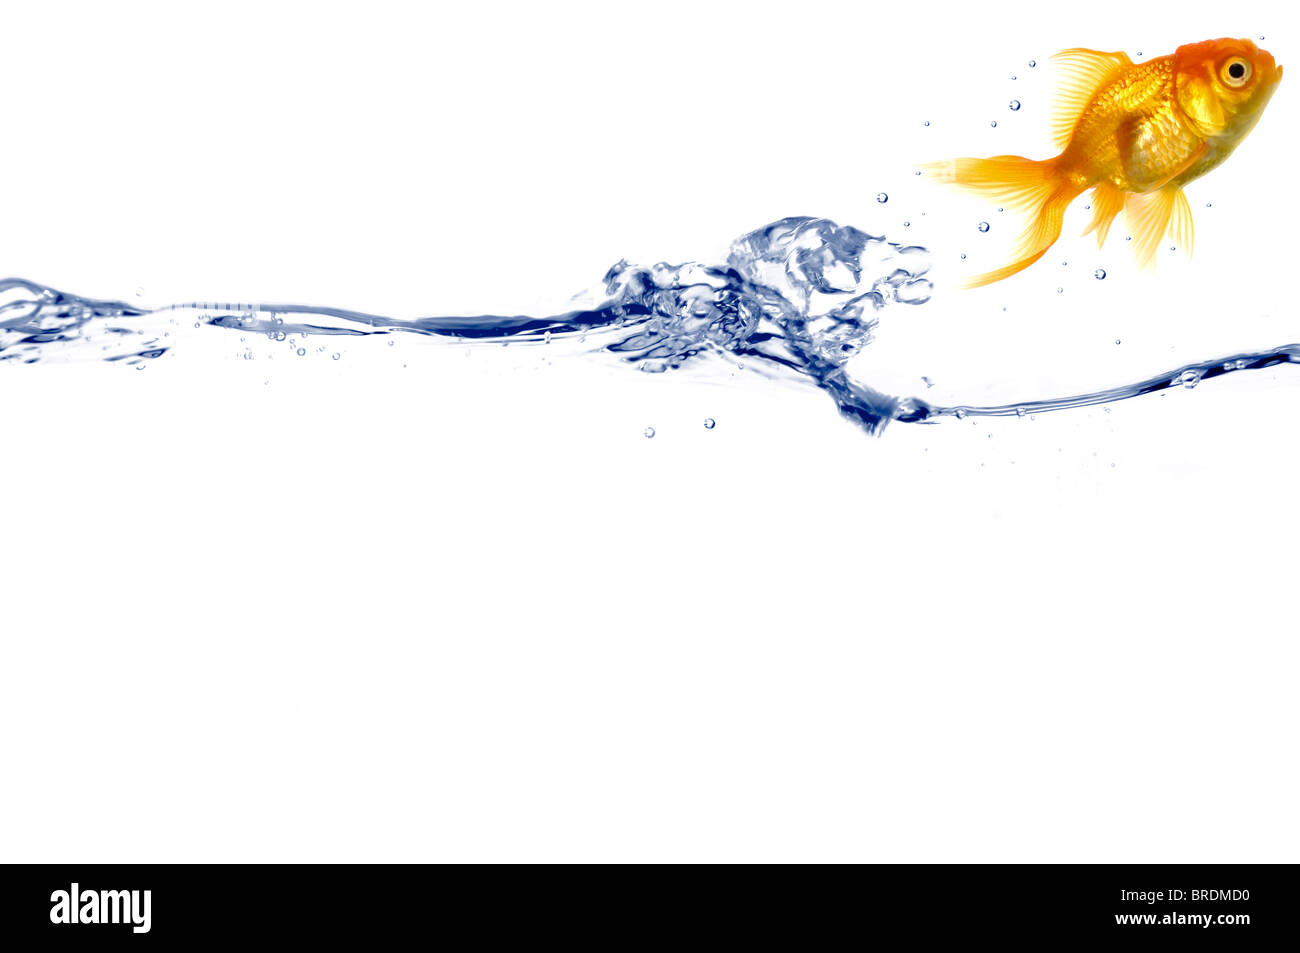 Goldfish is jumping out of the water. Taken on a white background. - Stock Image